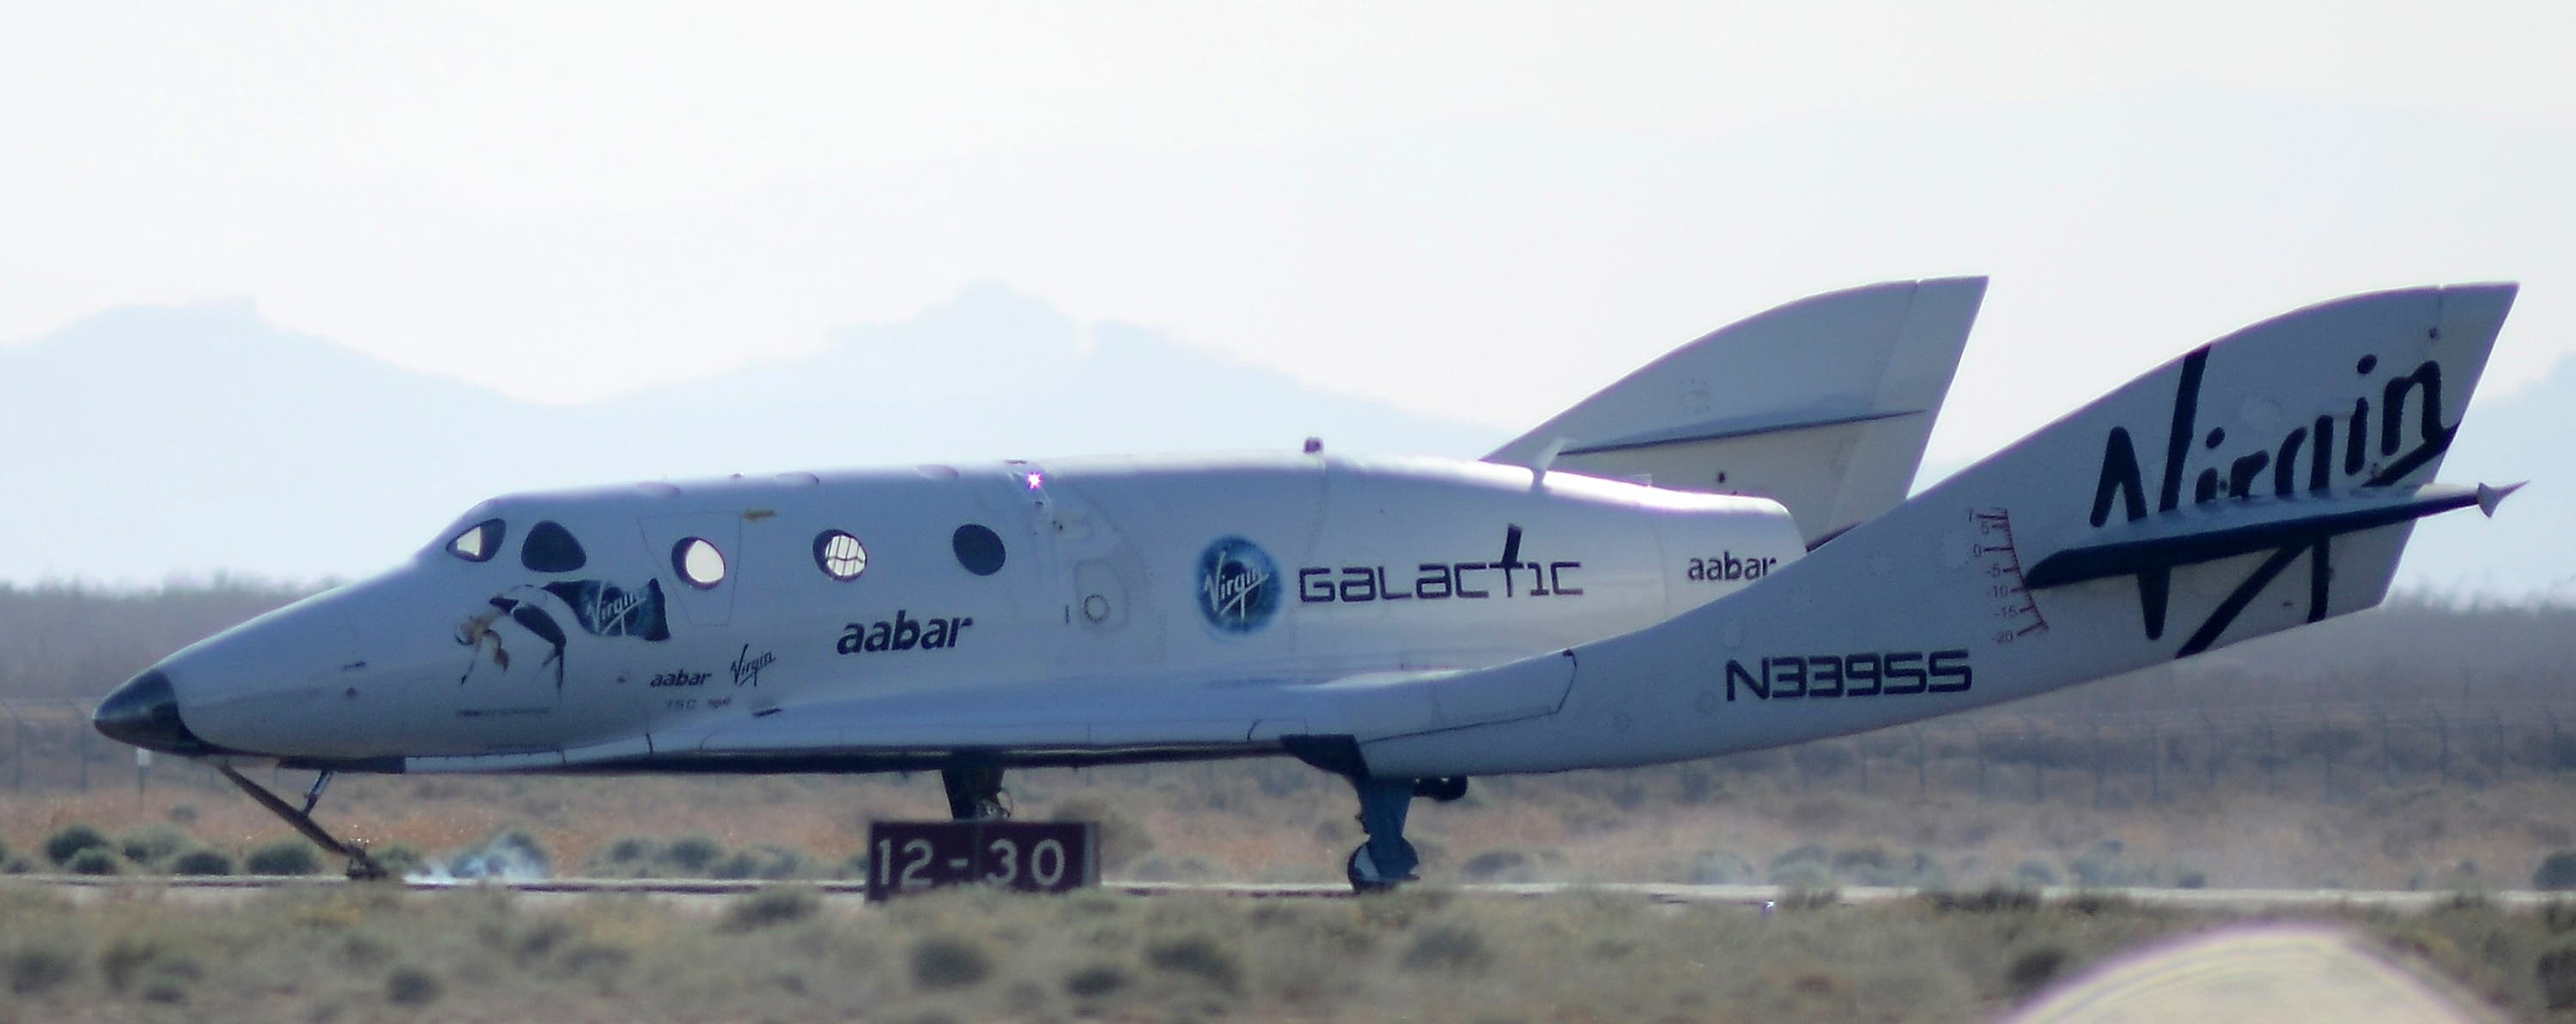 Virgin Galactic's SpaceShip Two (SS2), the world's first commercial spaceship owned by Sir Richard Branson's Virgin Group. (Reuters)